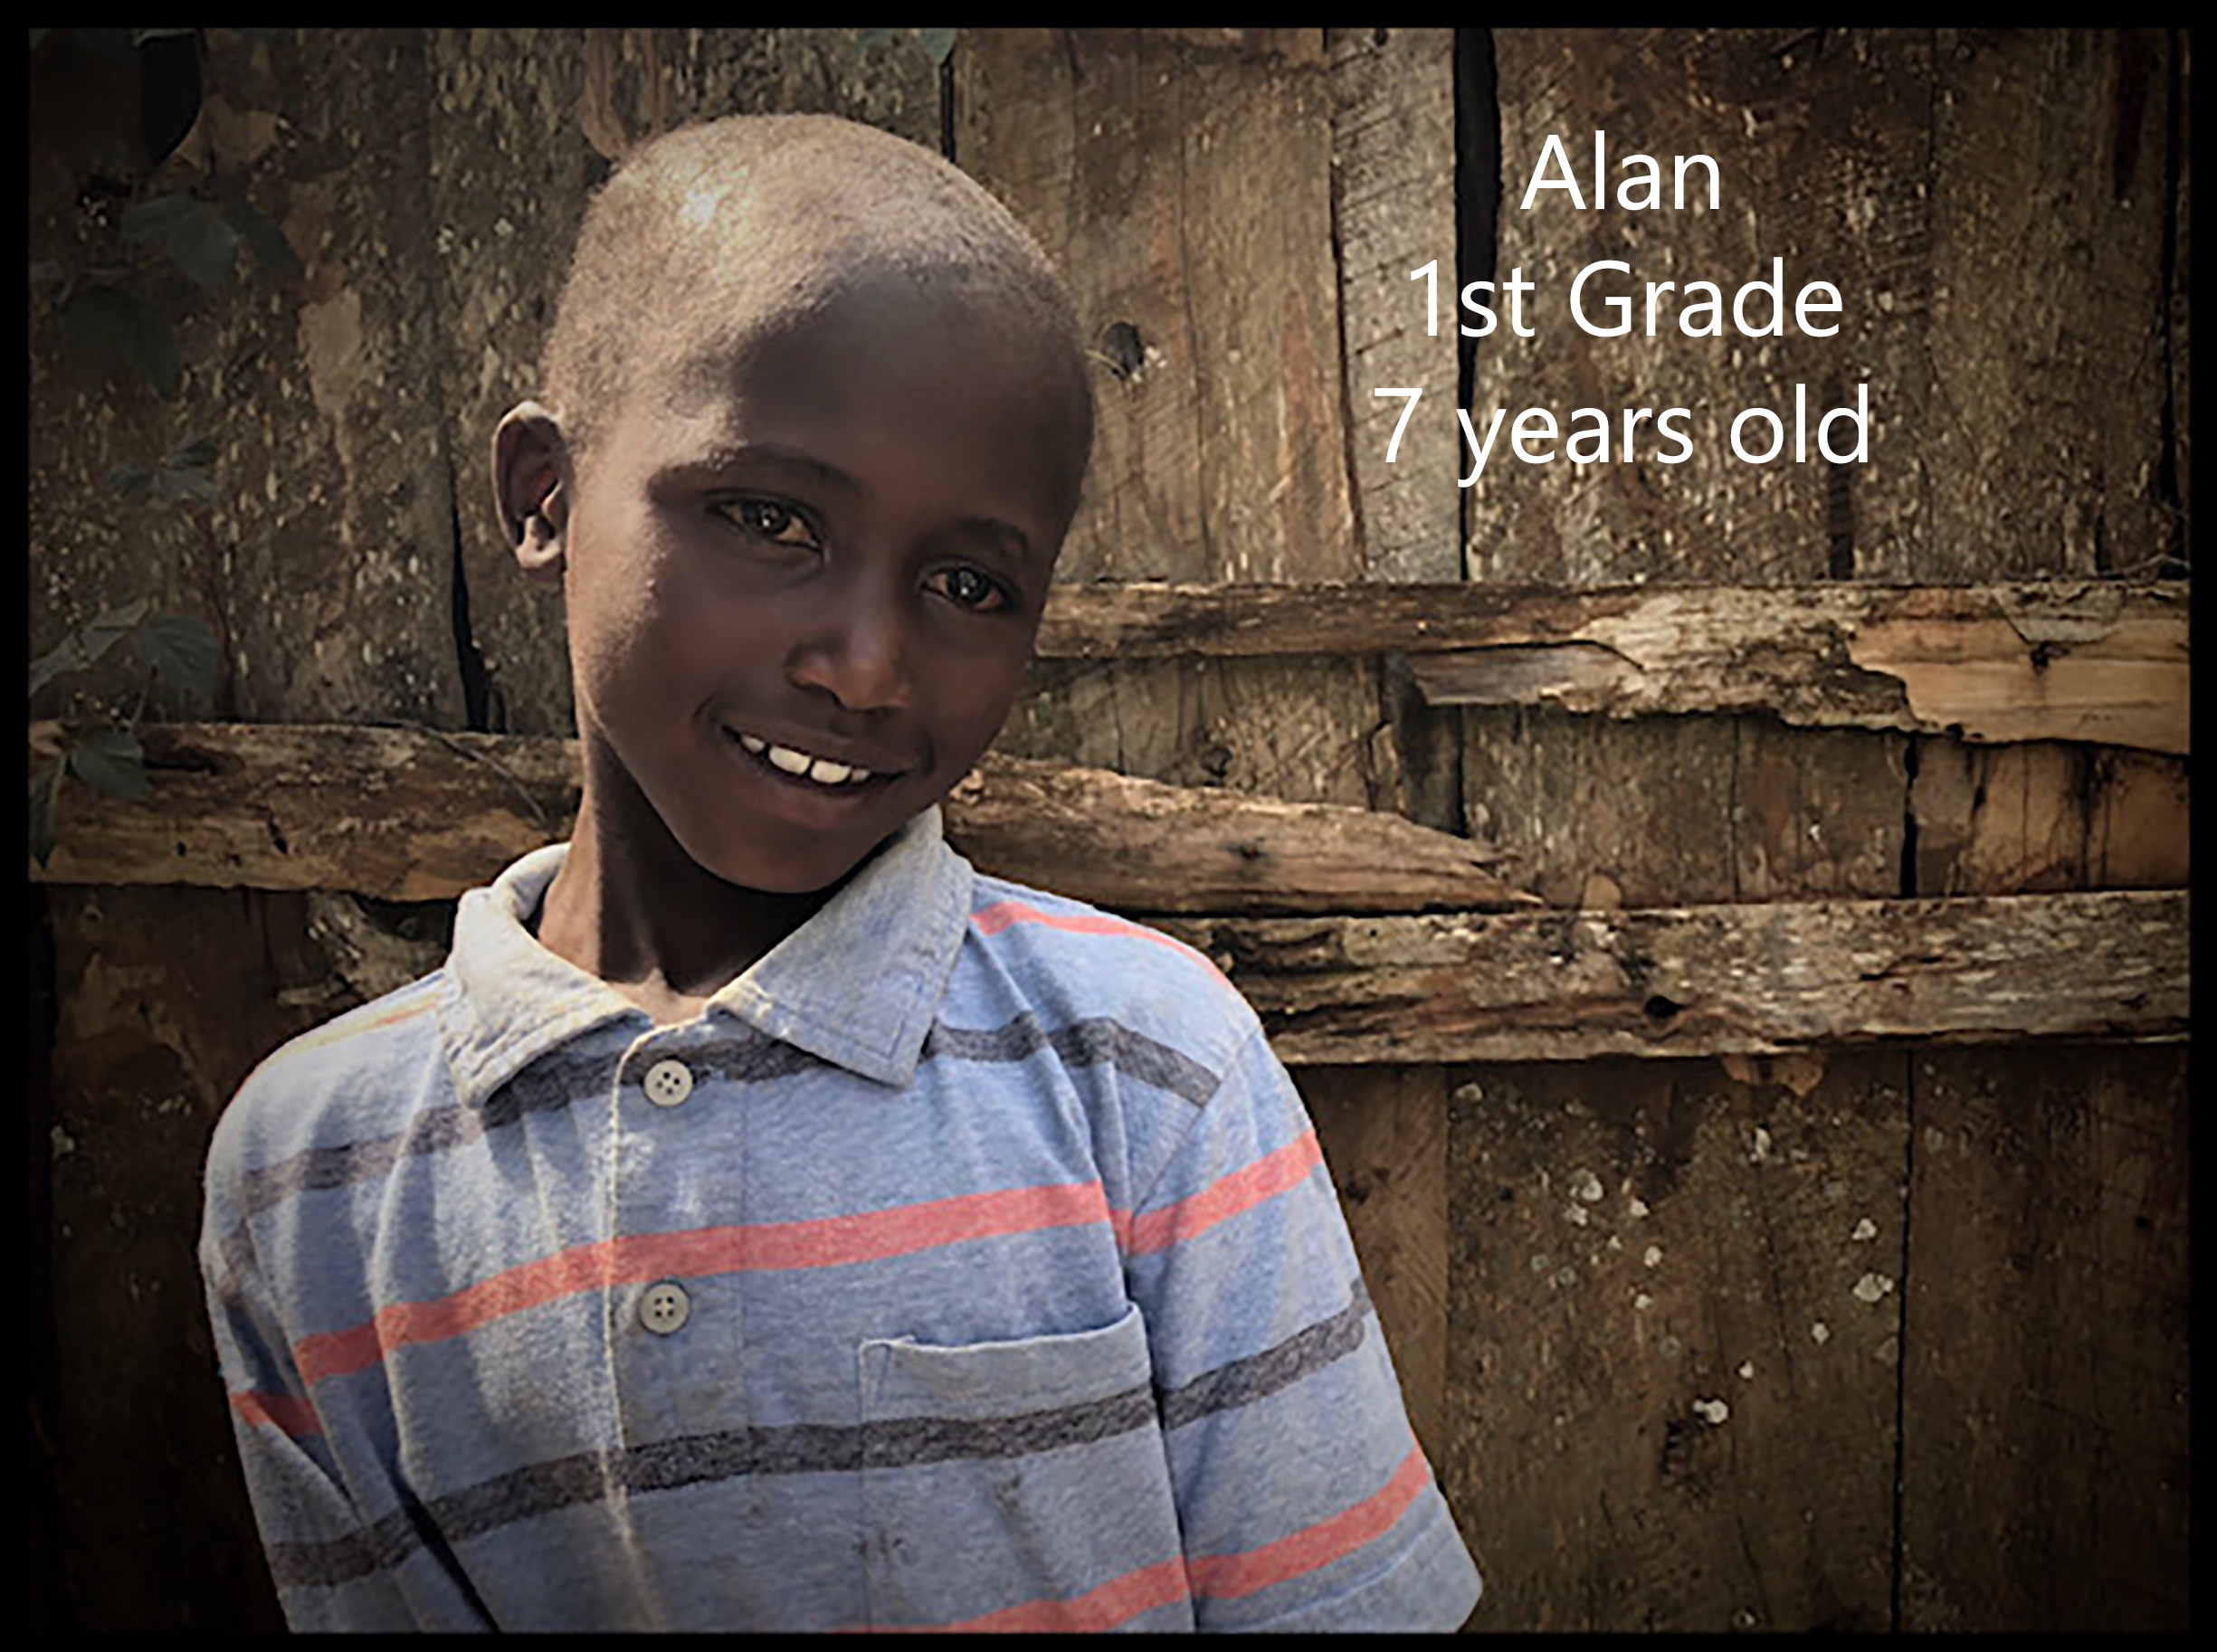 I pray that this little boy is chosen, like I was, so many years ago.  He  longs to feel hope instead of hunger and abandonment. He is 7 years old, a year older than when I was sponsored.   Sponsorship is a light in darkness.   Please - consider changing this little guys life.